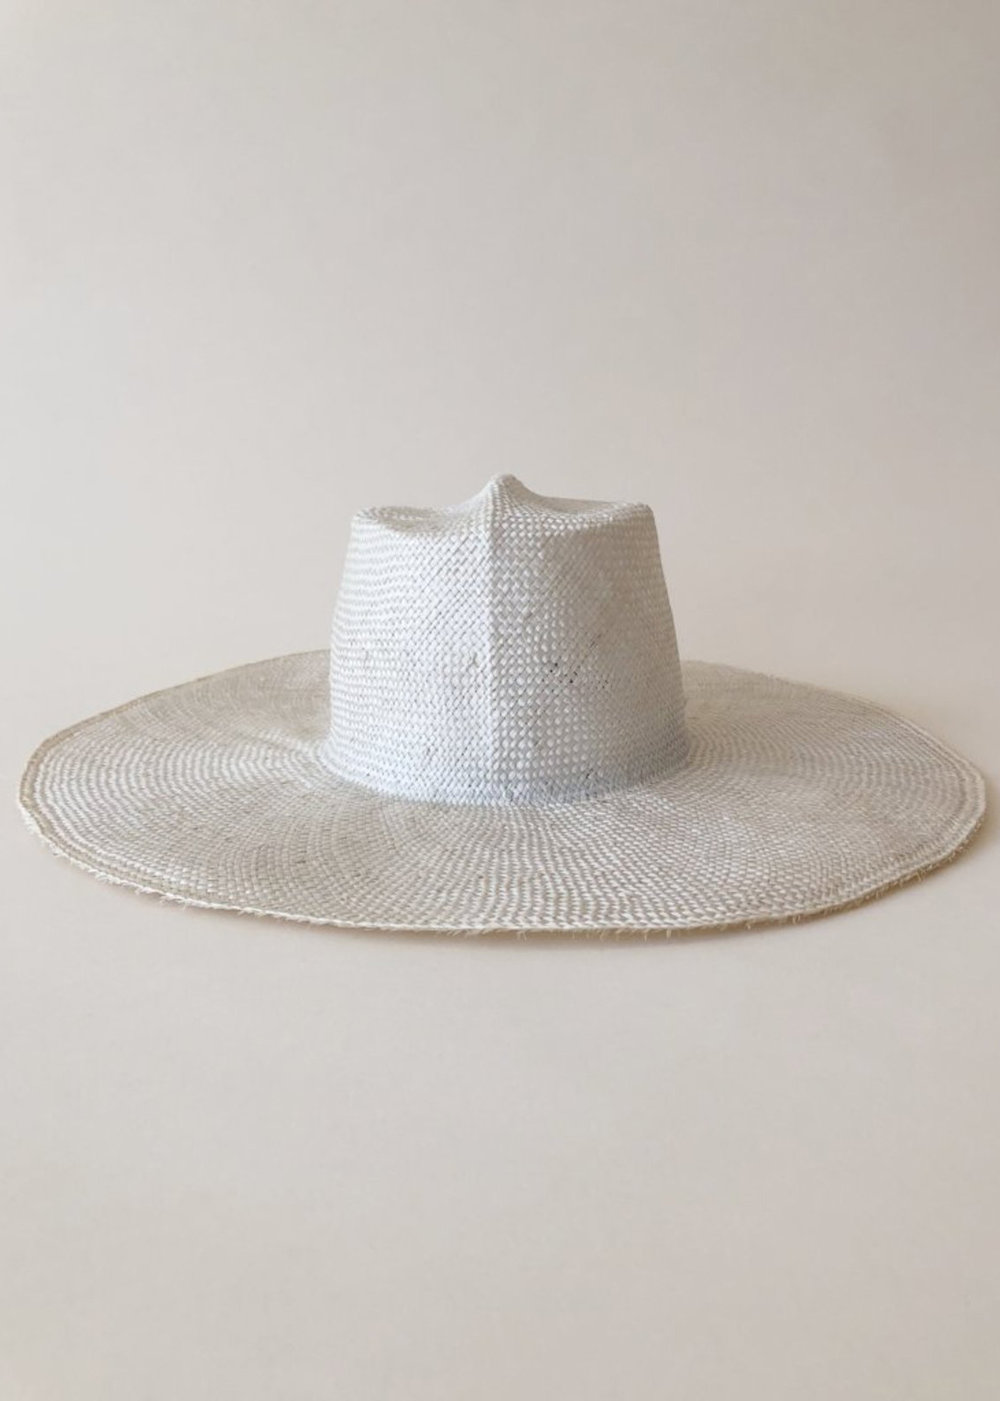 Wide brim straw hat - We are a fan of all Brookes Boswell hats, but we love the white color of this one to keep it light and the wide brim.